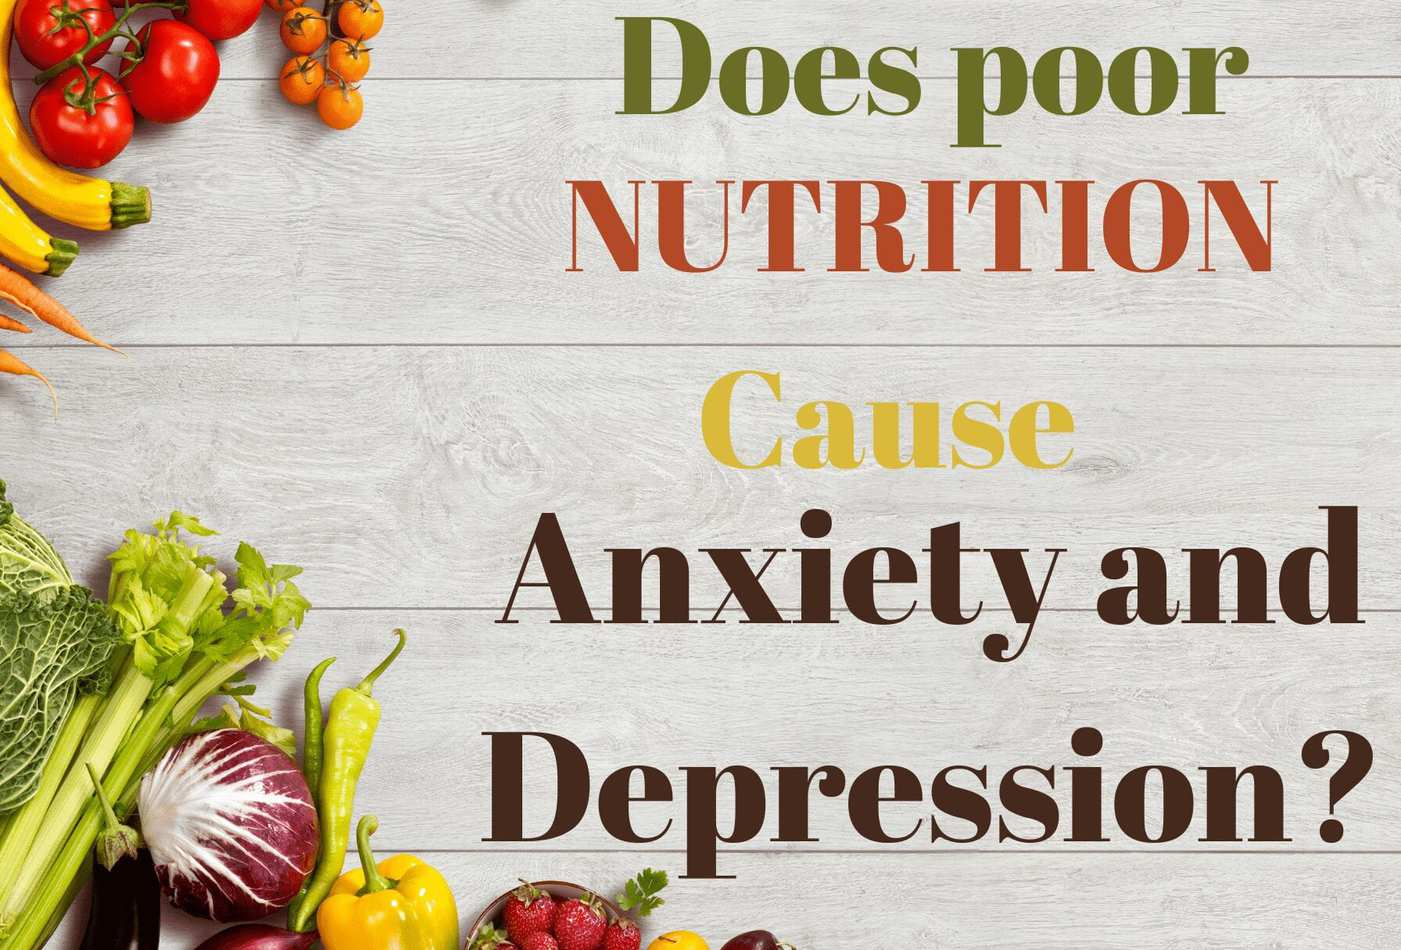 Does poor nutrition and diet cause anxiety and depression?